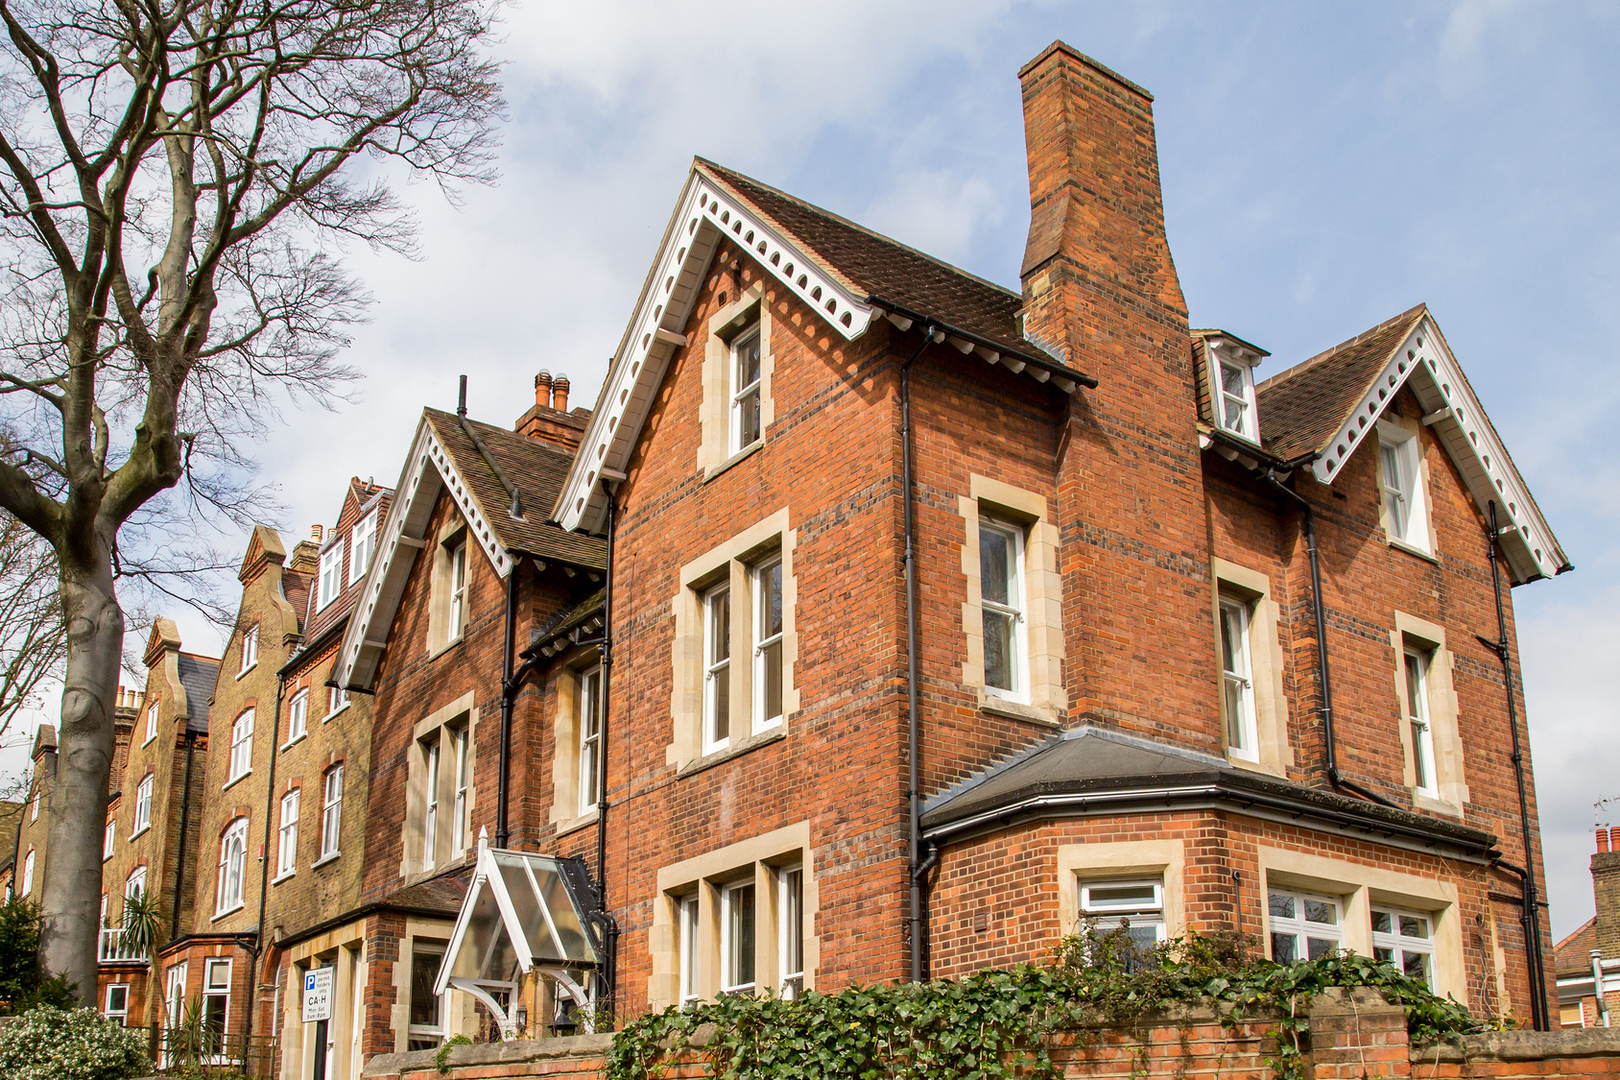 Row of Typical English Houses in Hampstead London